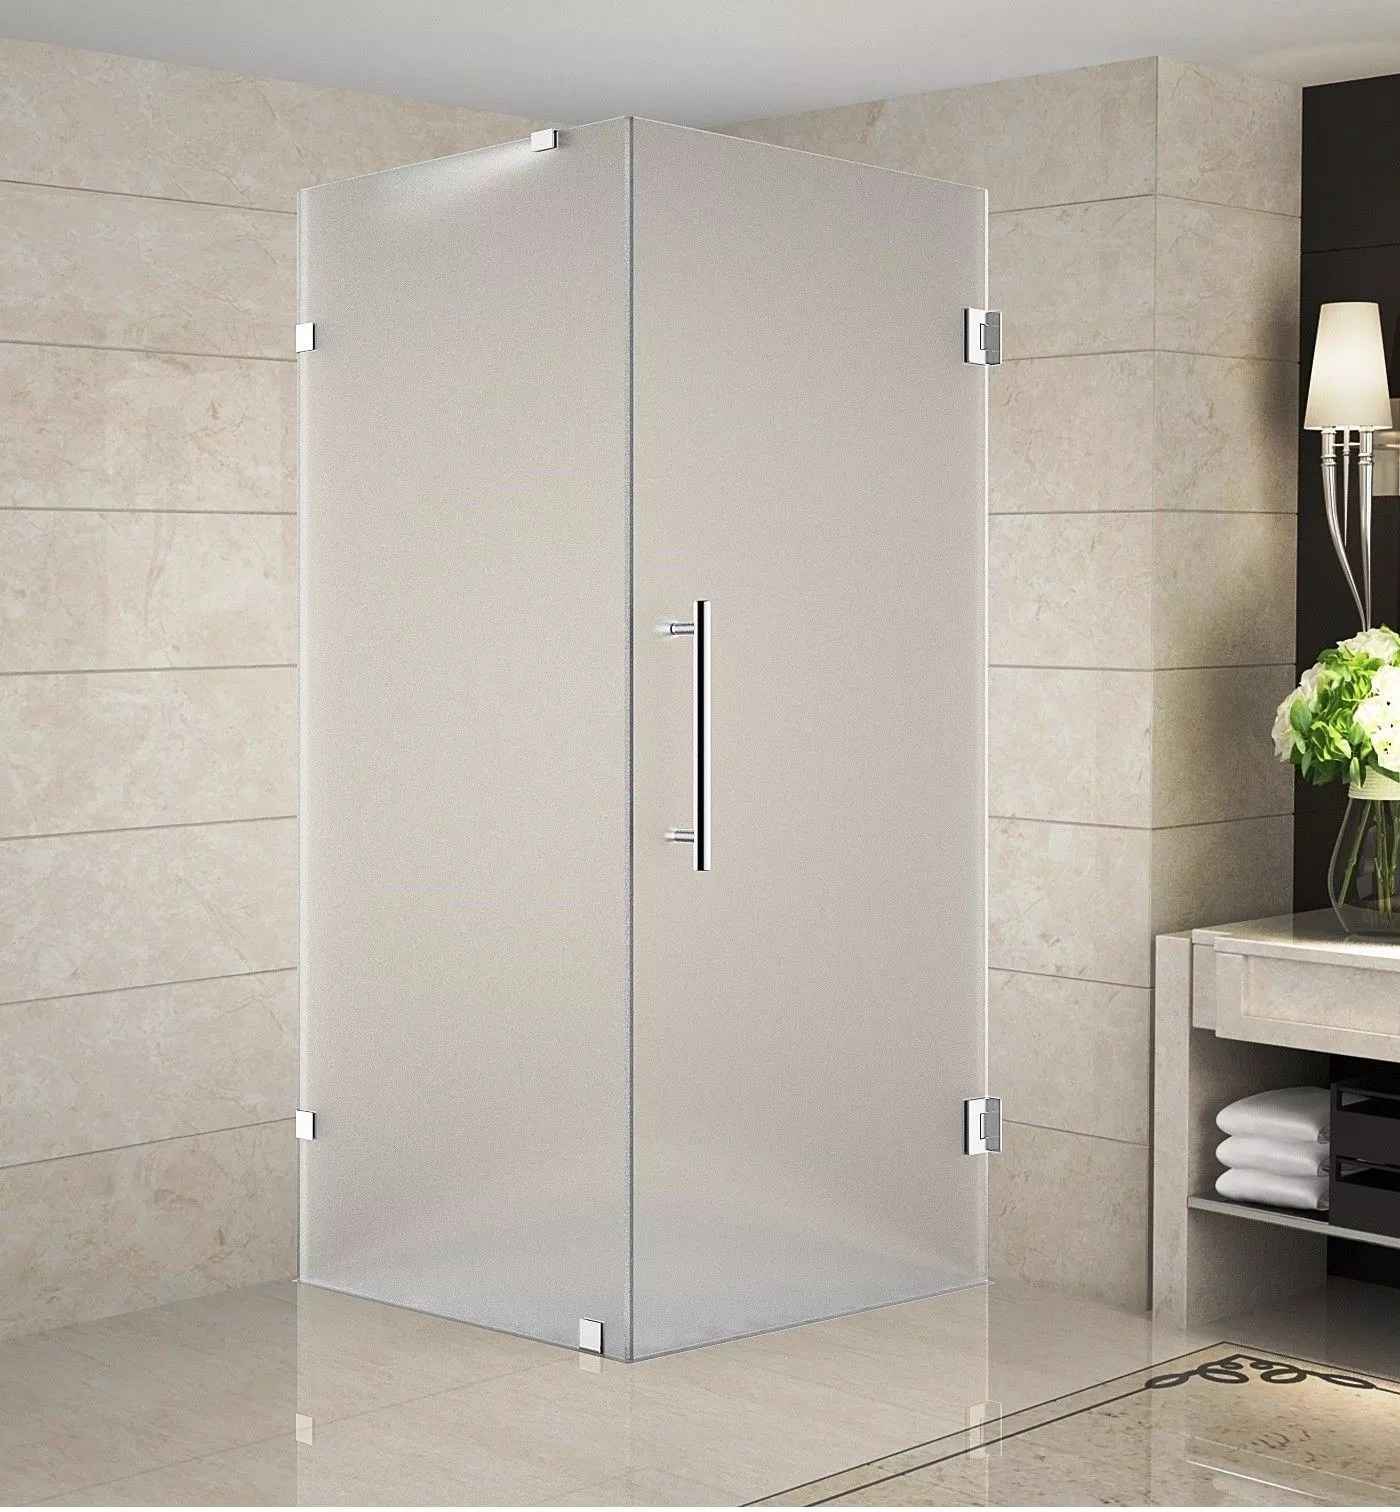 Door Cabinet Entry Interior Frosted Glass Bathroom Door Buy Frosted Glass Bathroom Entry Door Interior Frosted Glass Bathroom Door Frosted Glass